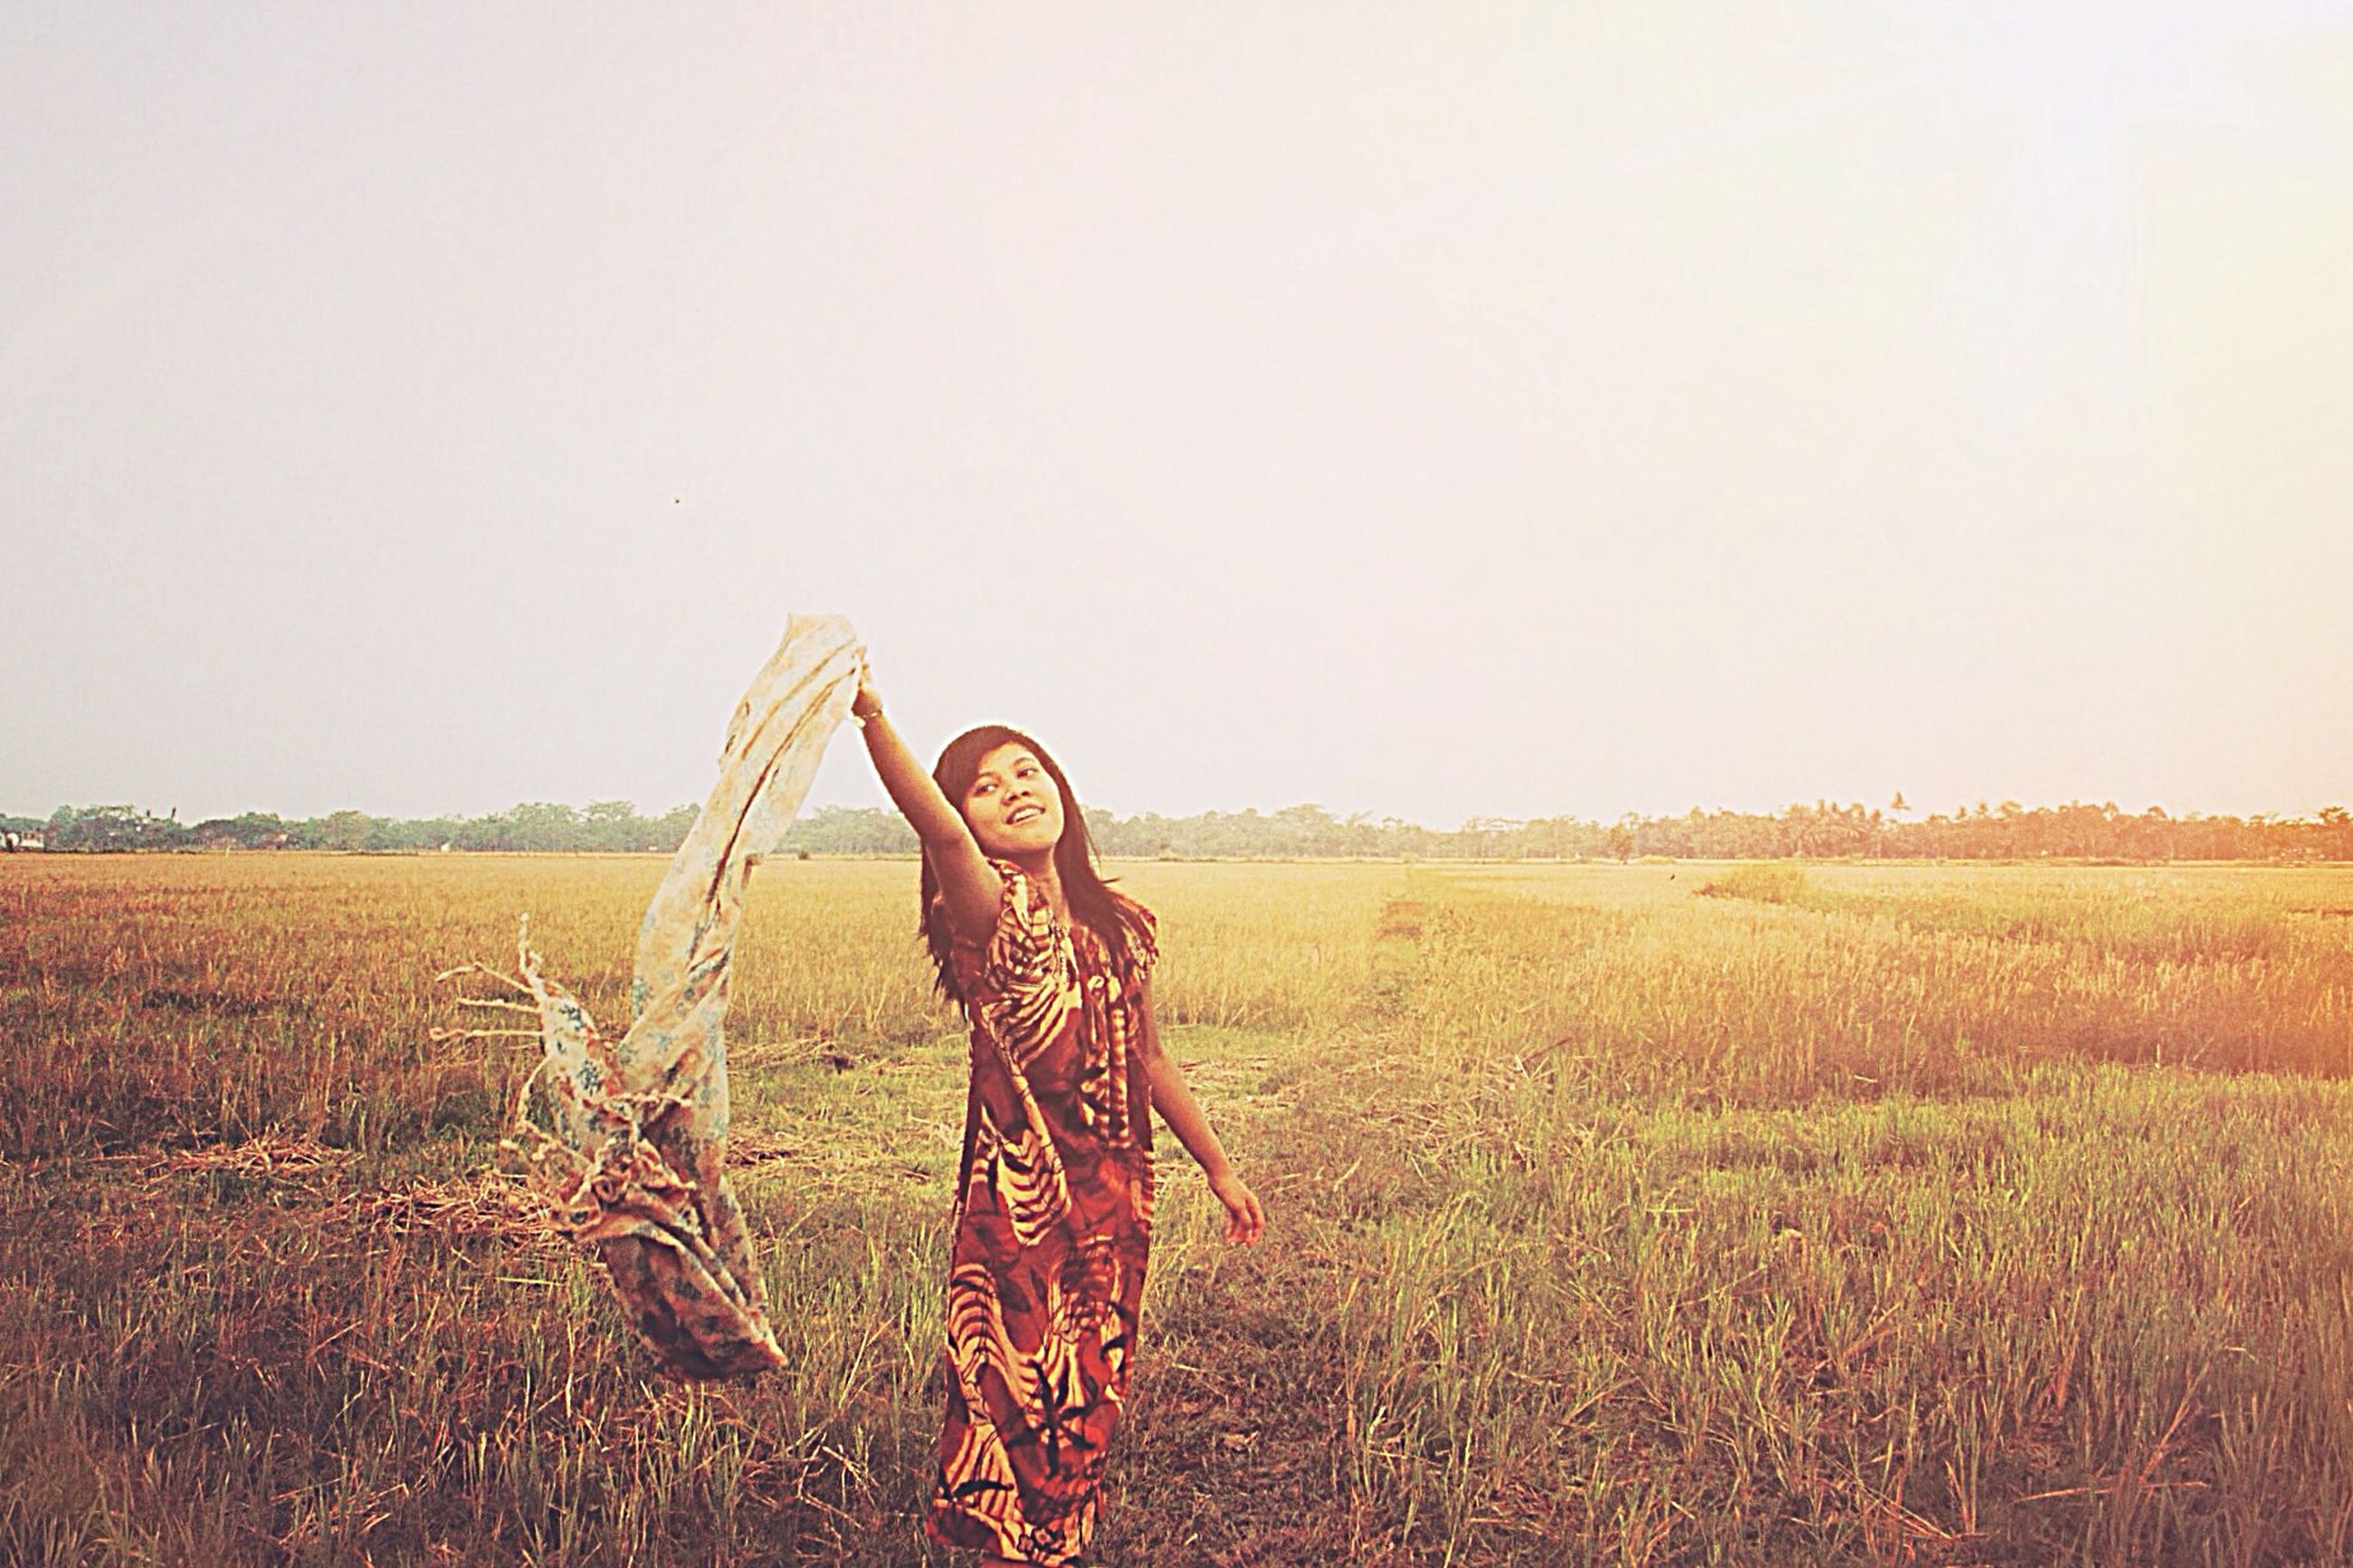 lifestyles, leisure activity, field, grass, casual clothing, clear sky, full length, young adult, standing, person, copy space, landscape, young women, grassy, three quarter length, childhood, sky, elementary age